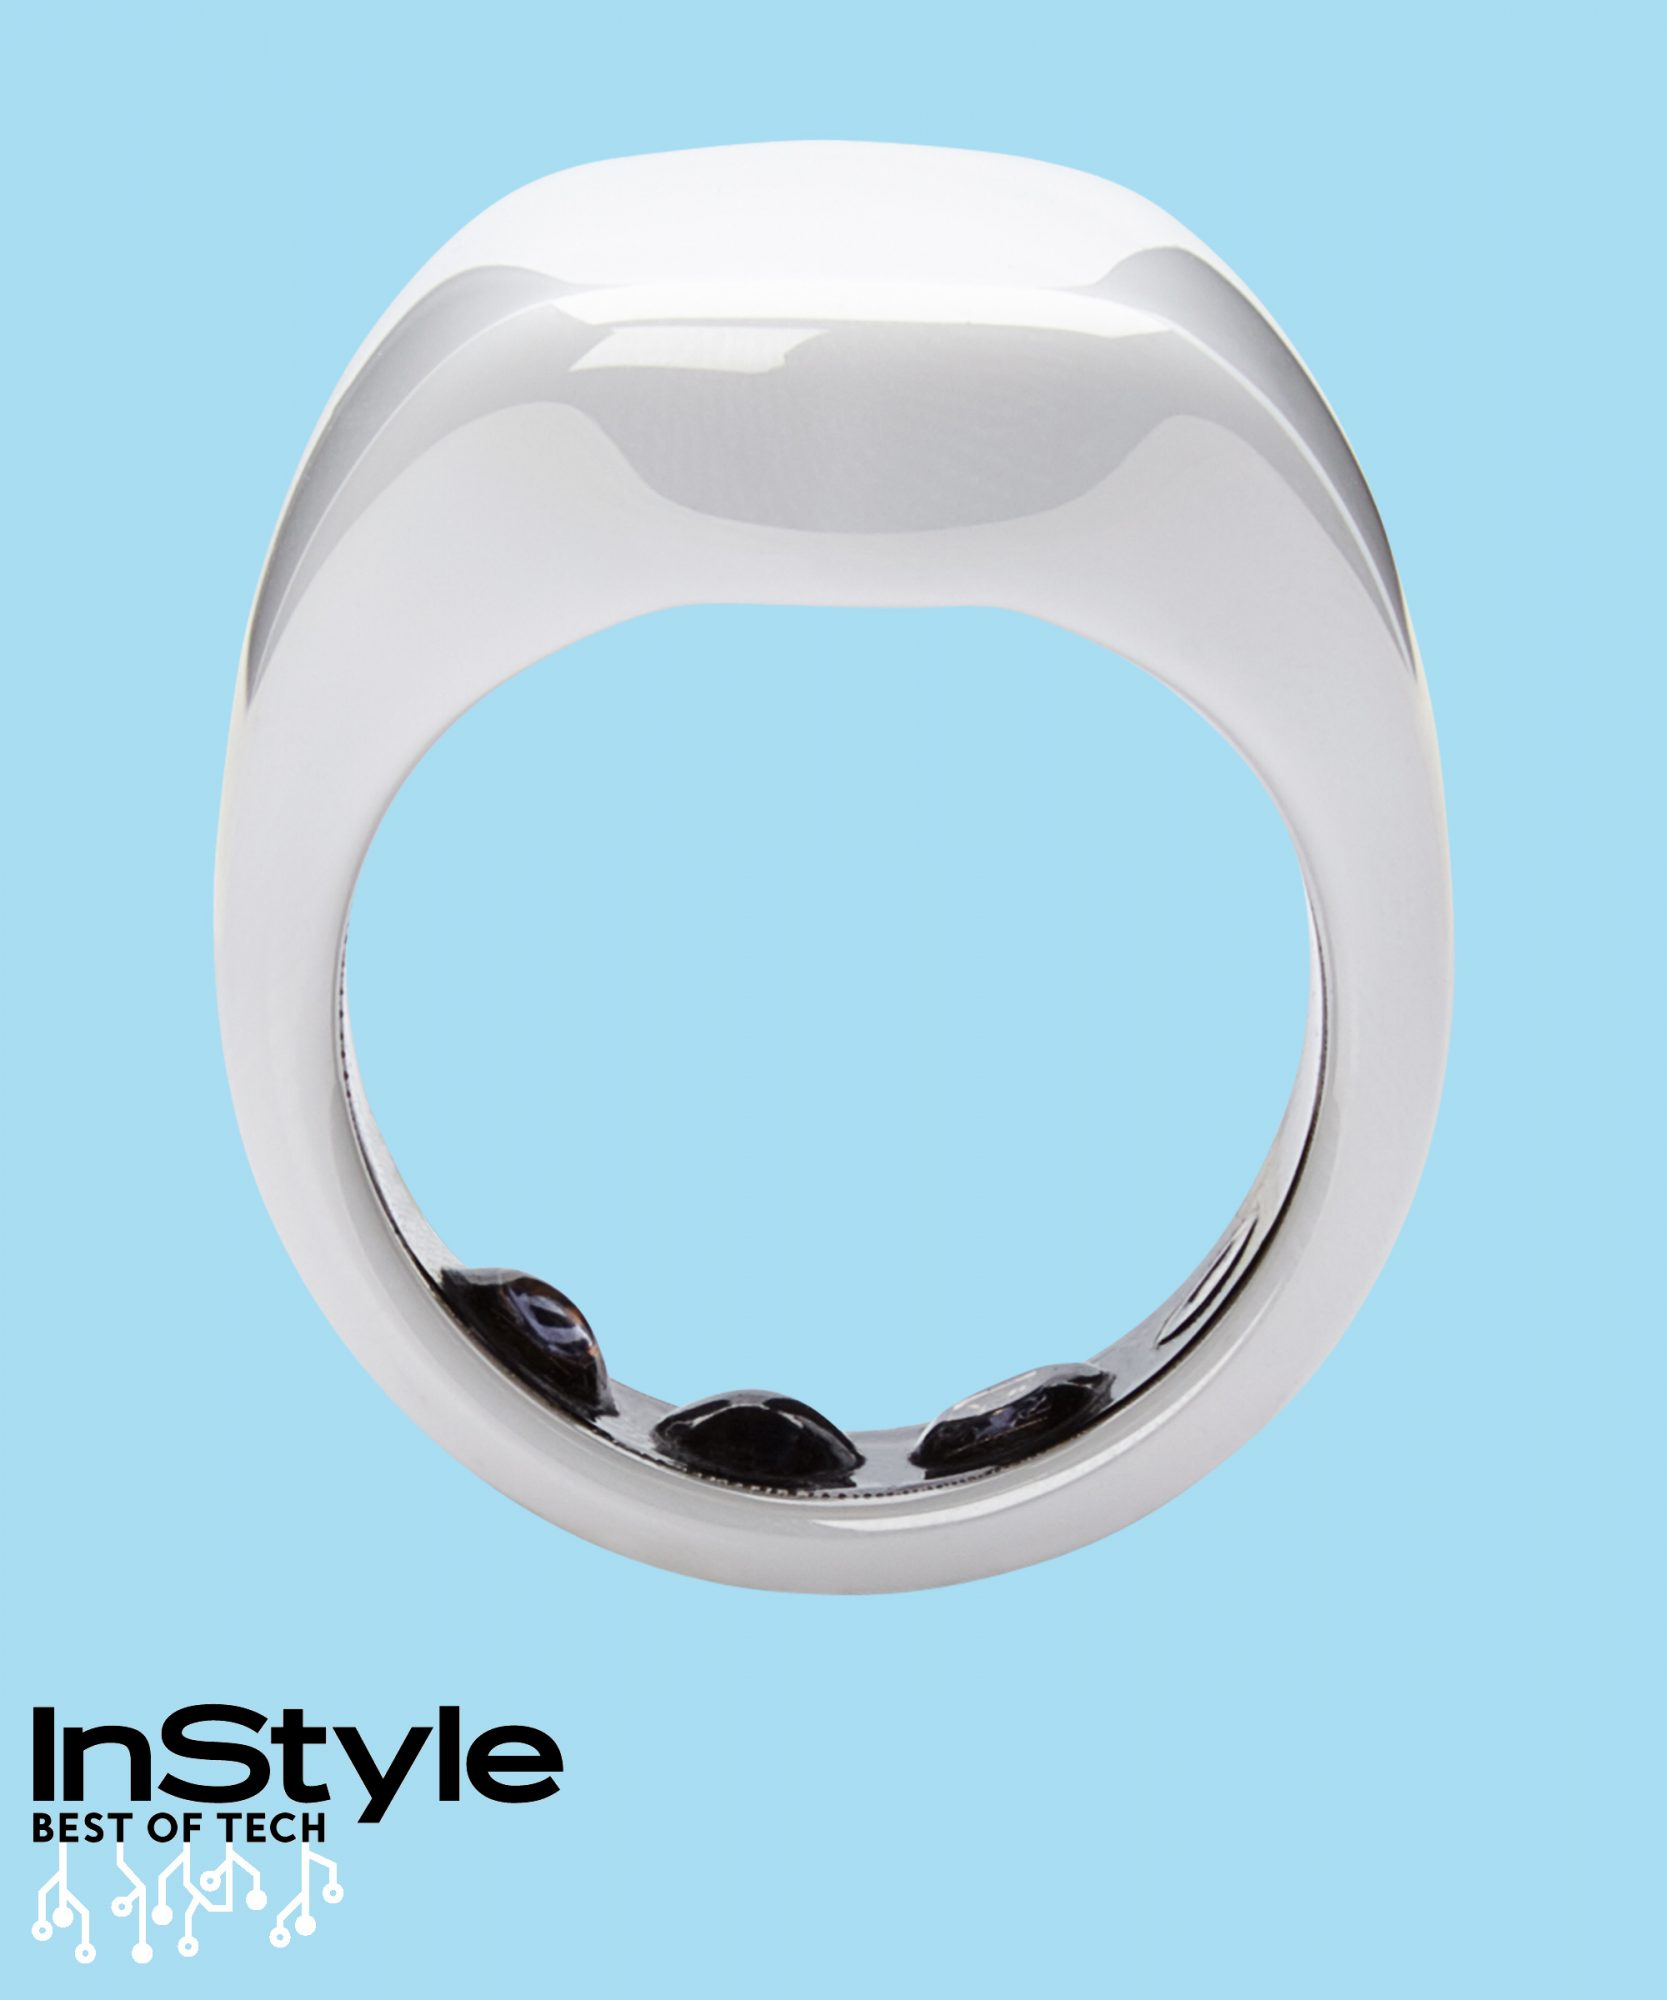 Best Sleep-Monitoring Gadget: Oura Ring